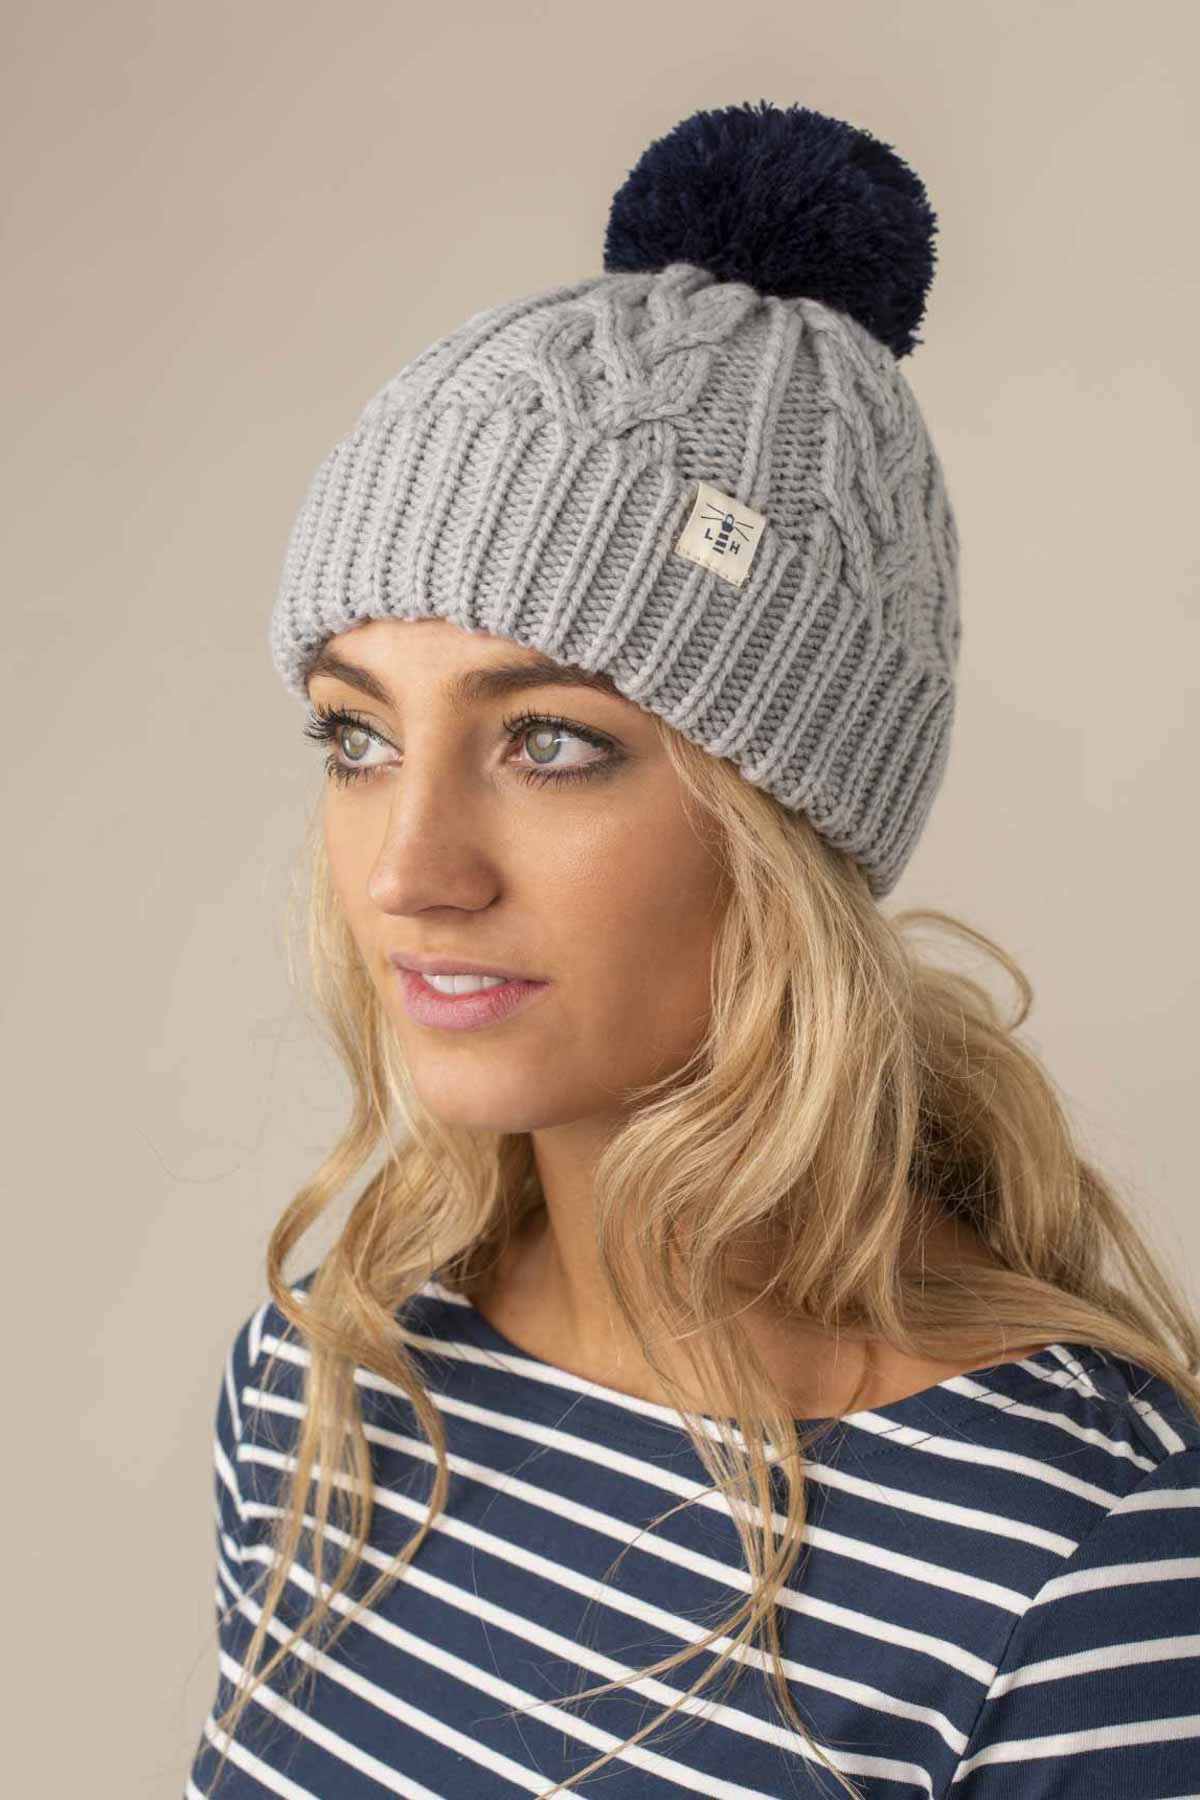 Hannah Bobble Hat. Grey Cable Knit Style | Lighthouse